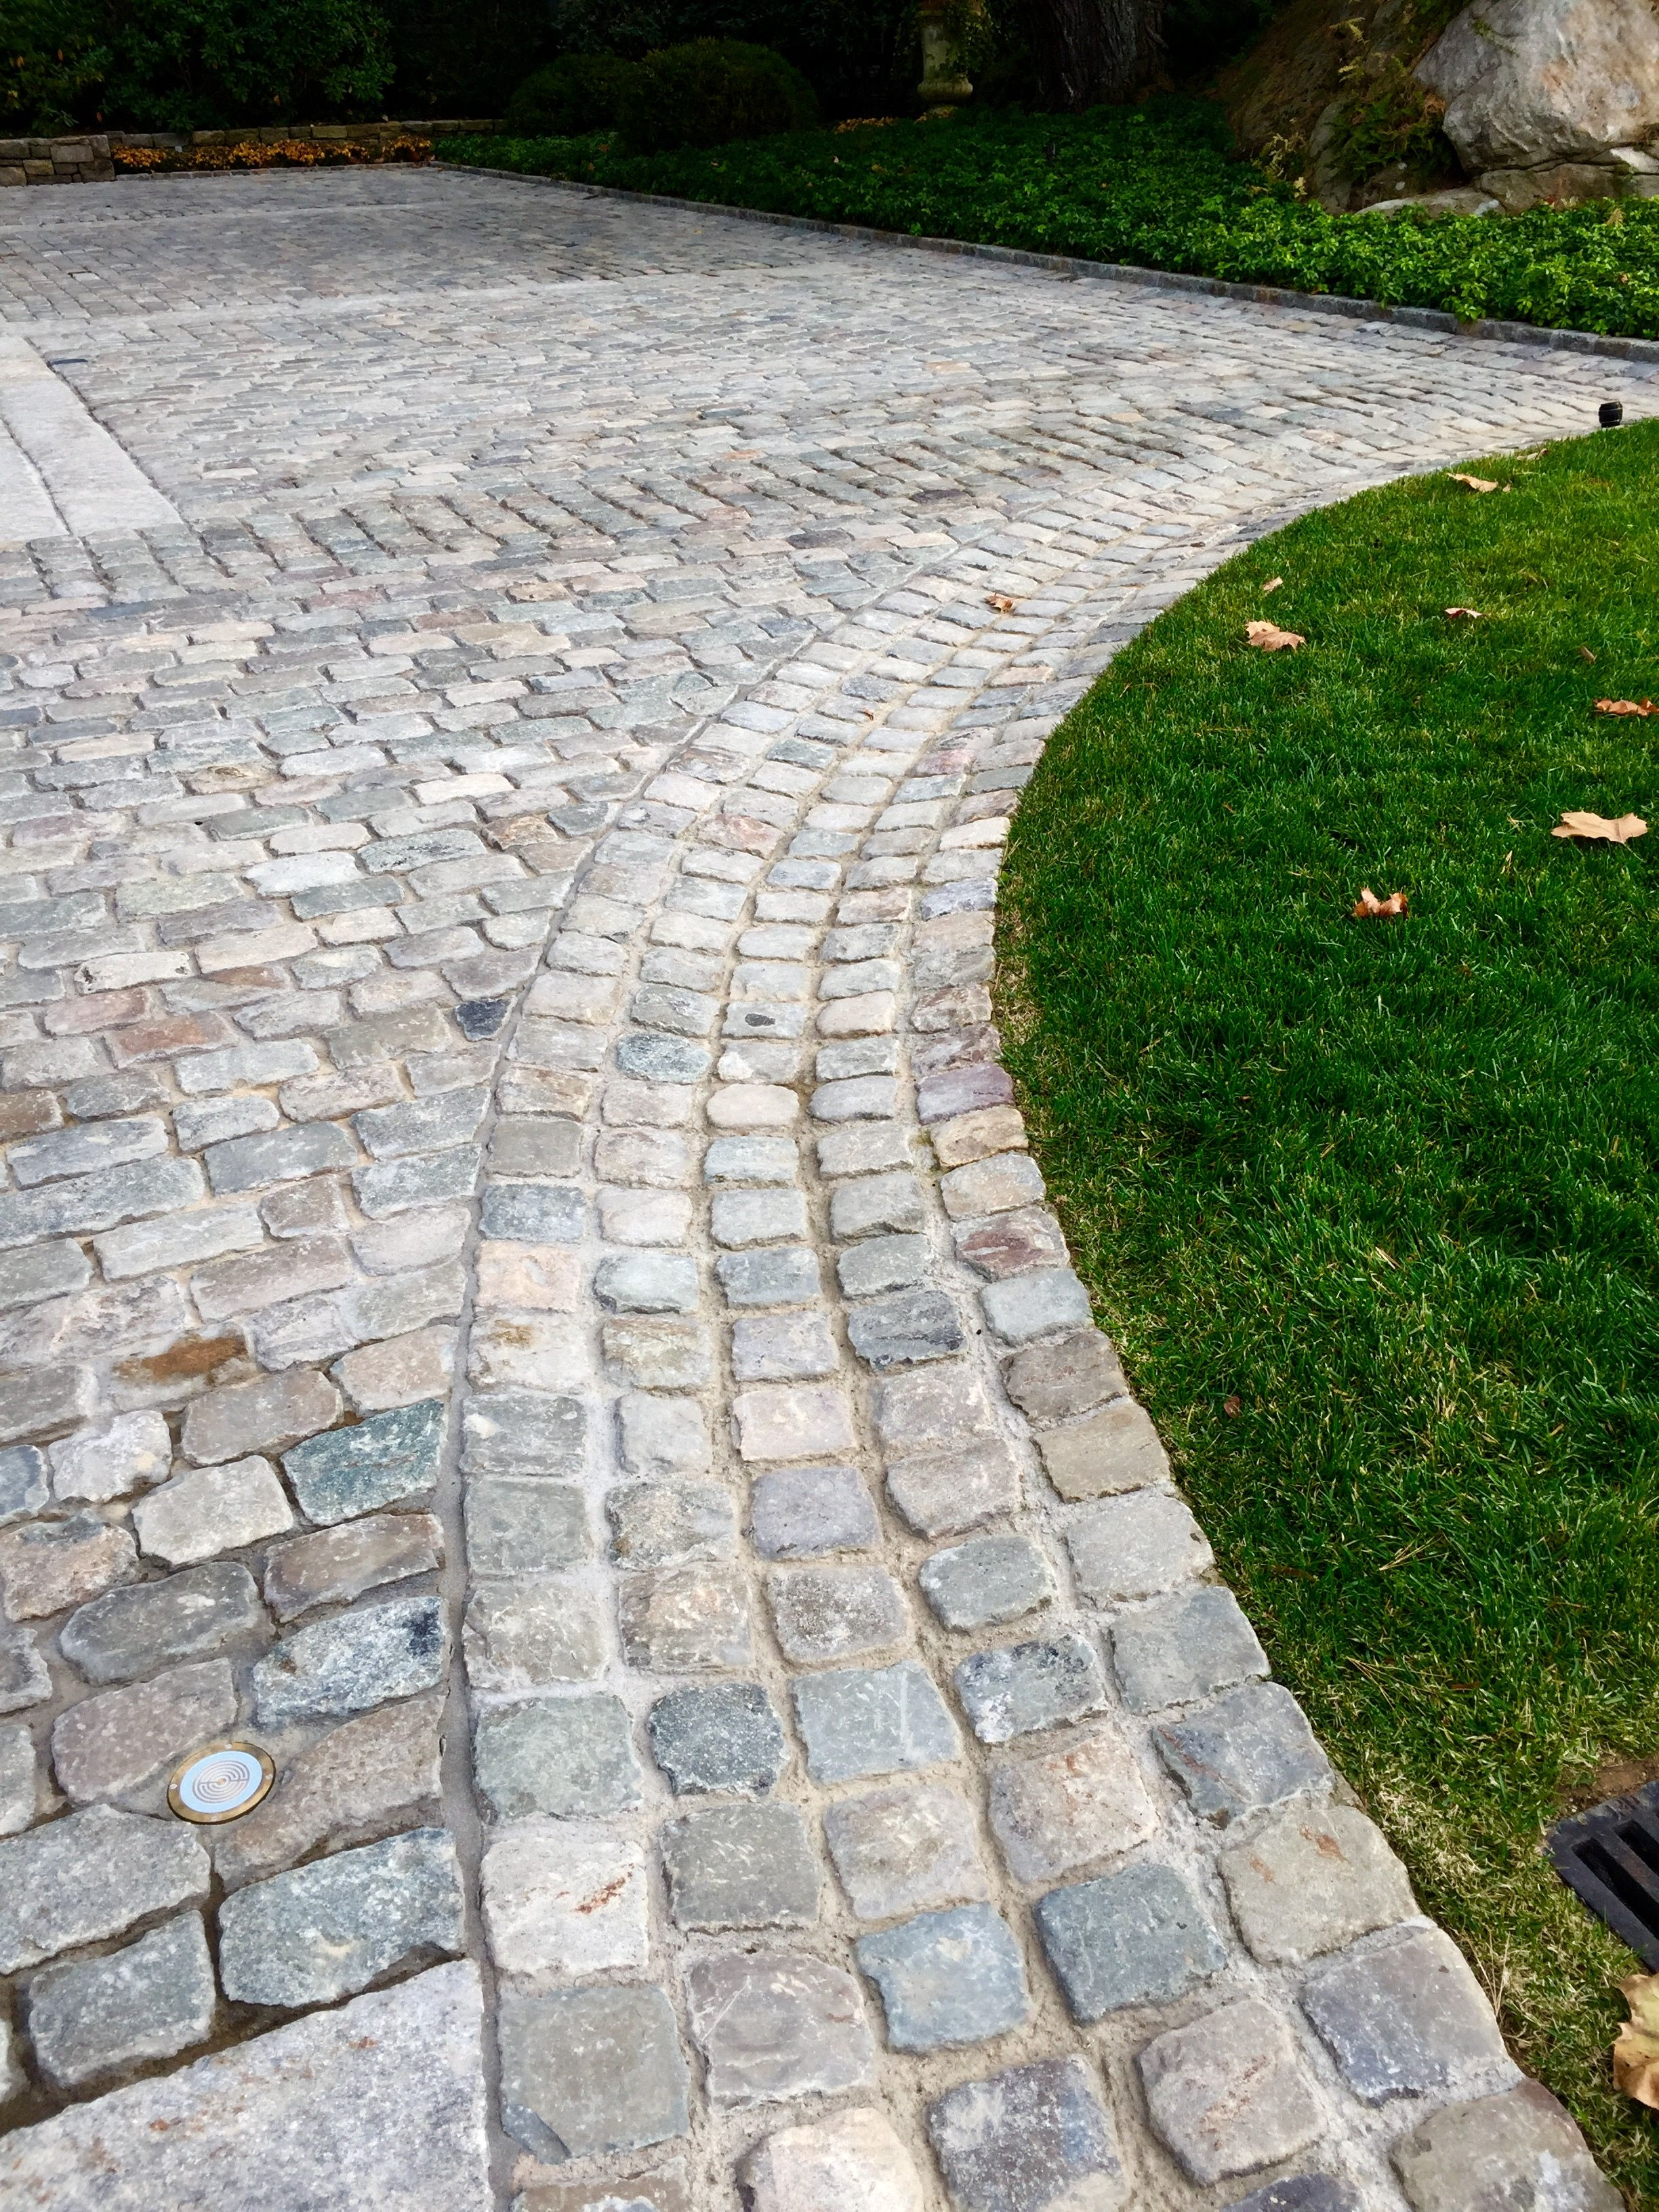 21 stunning picture collection for paving ideas driveway ideas cube elegant and cheap. Black Bedroom Furniture Sets. Home Design Ideas